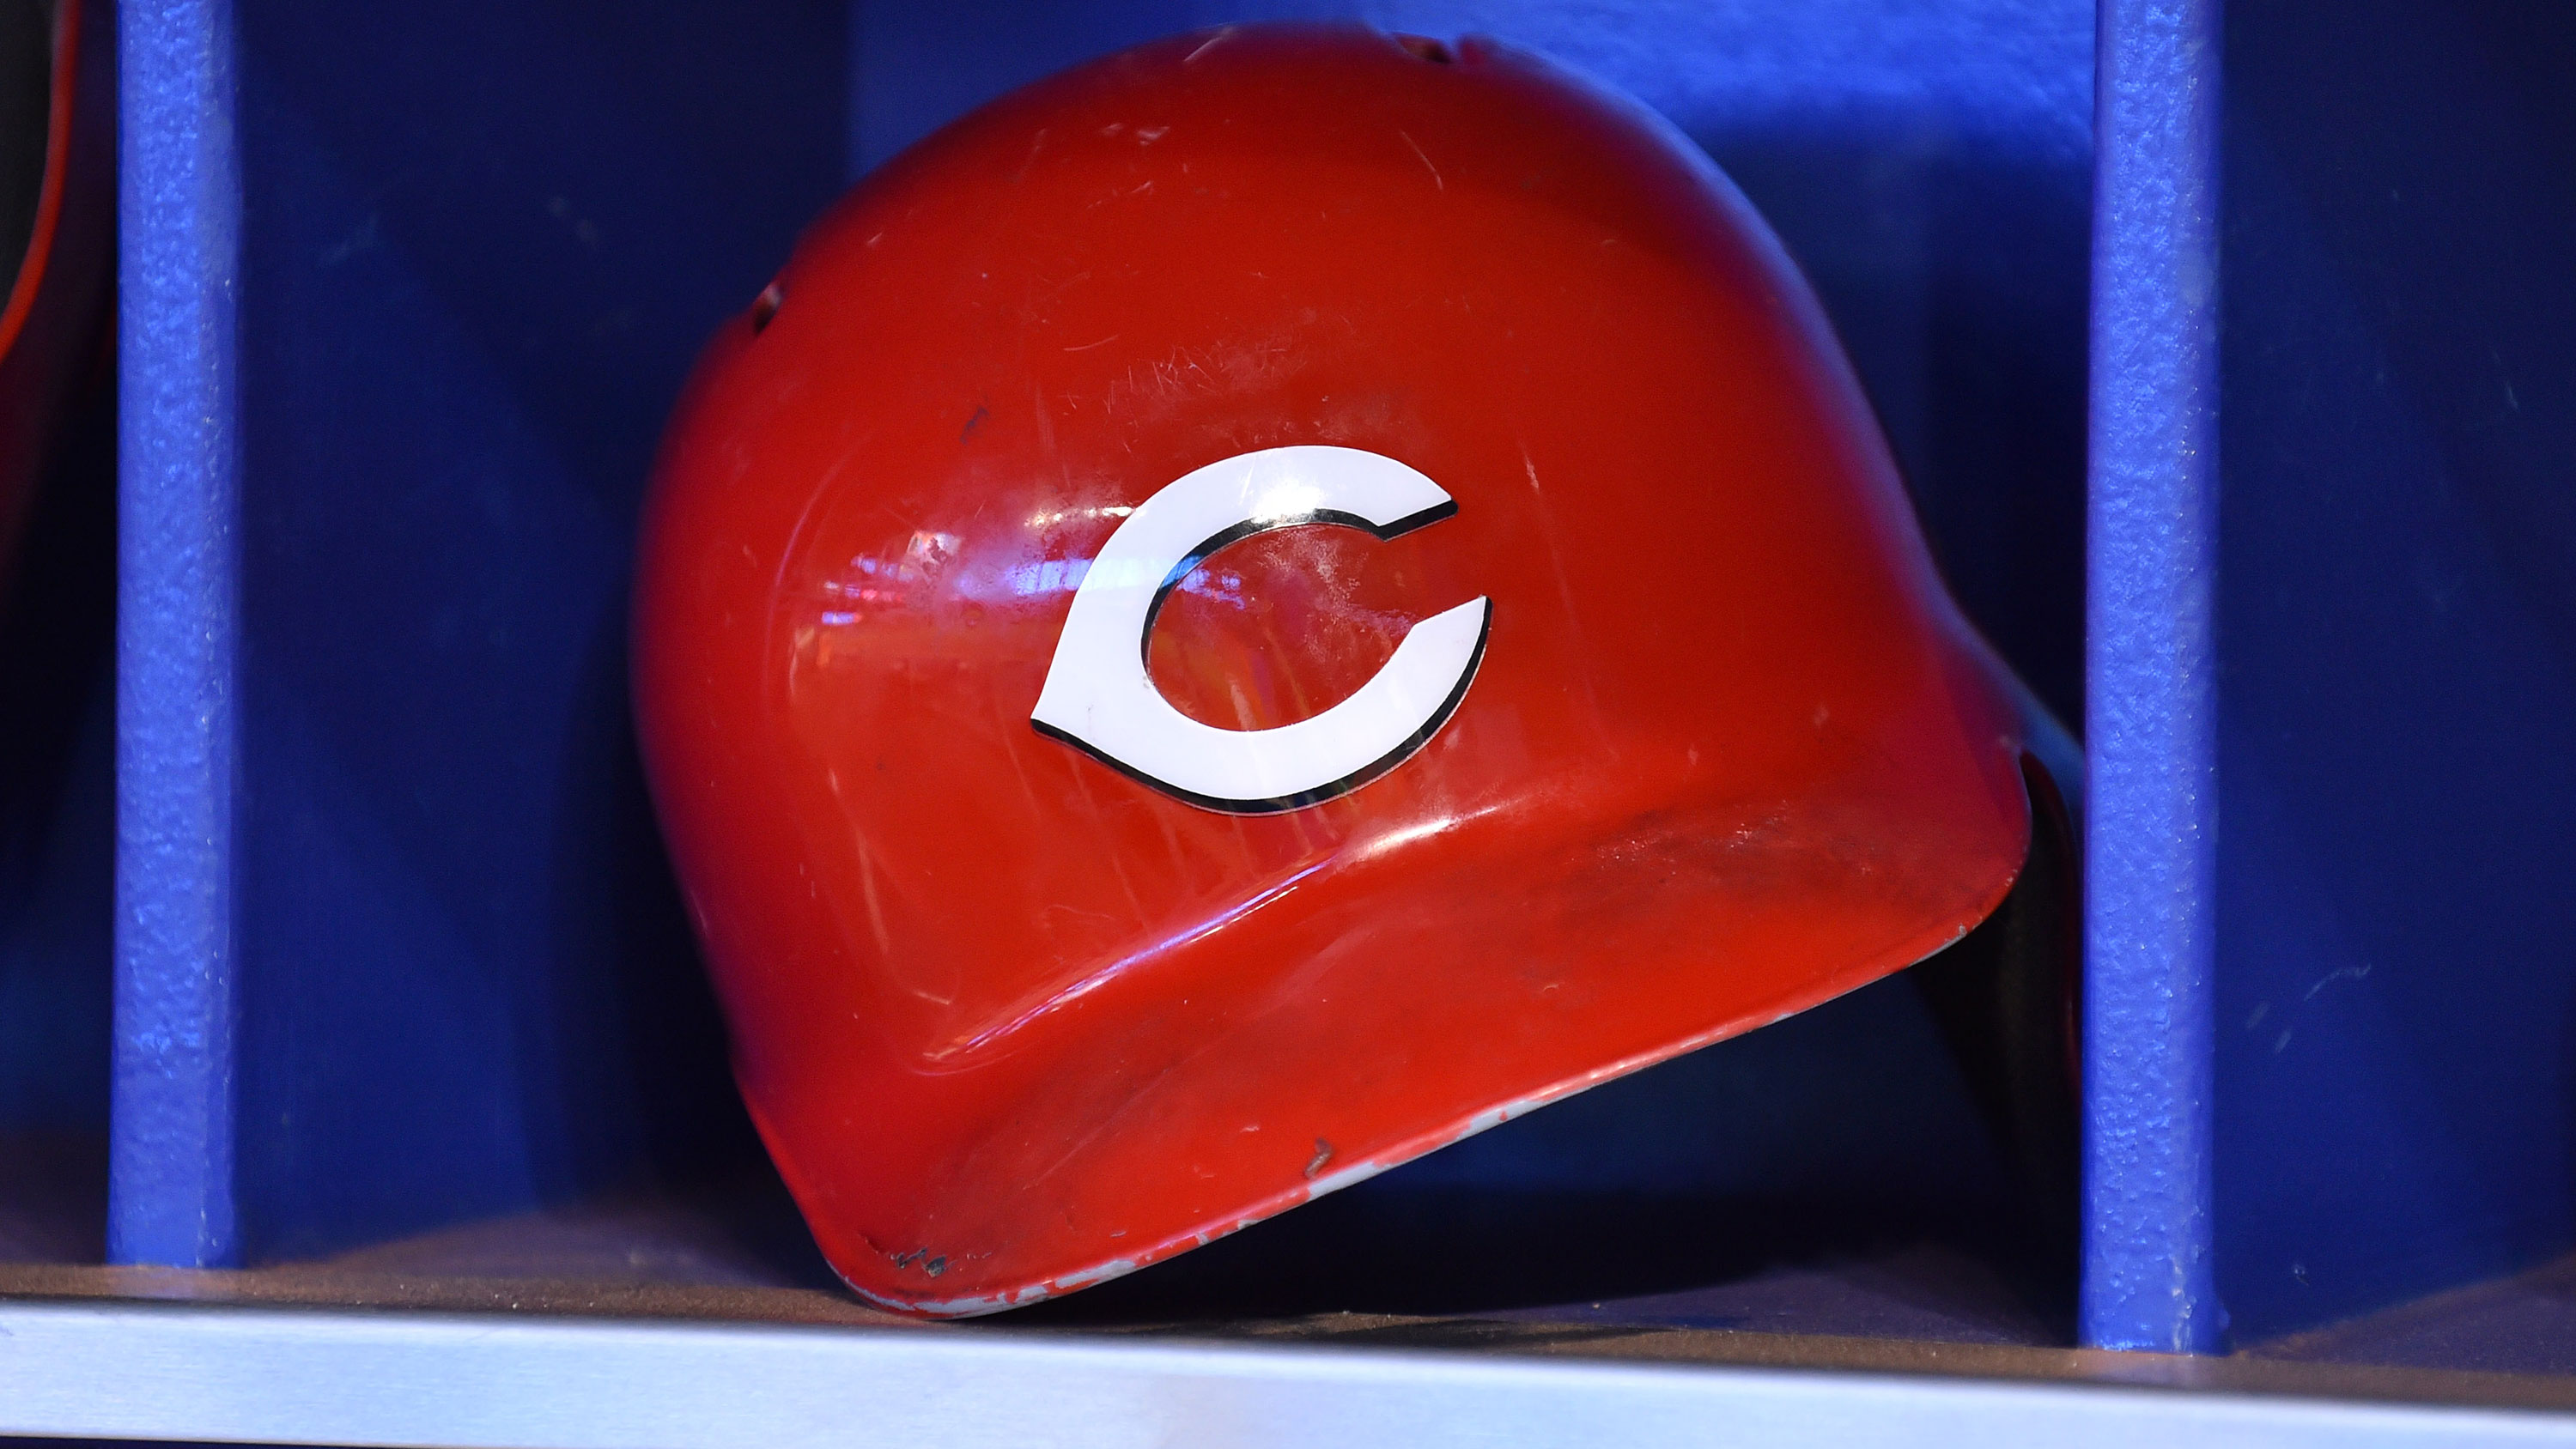 MLB postpones this weekend's Reds-Pirates games after positive Covid-19 test